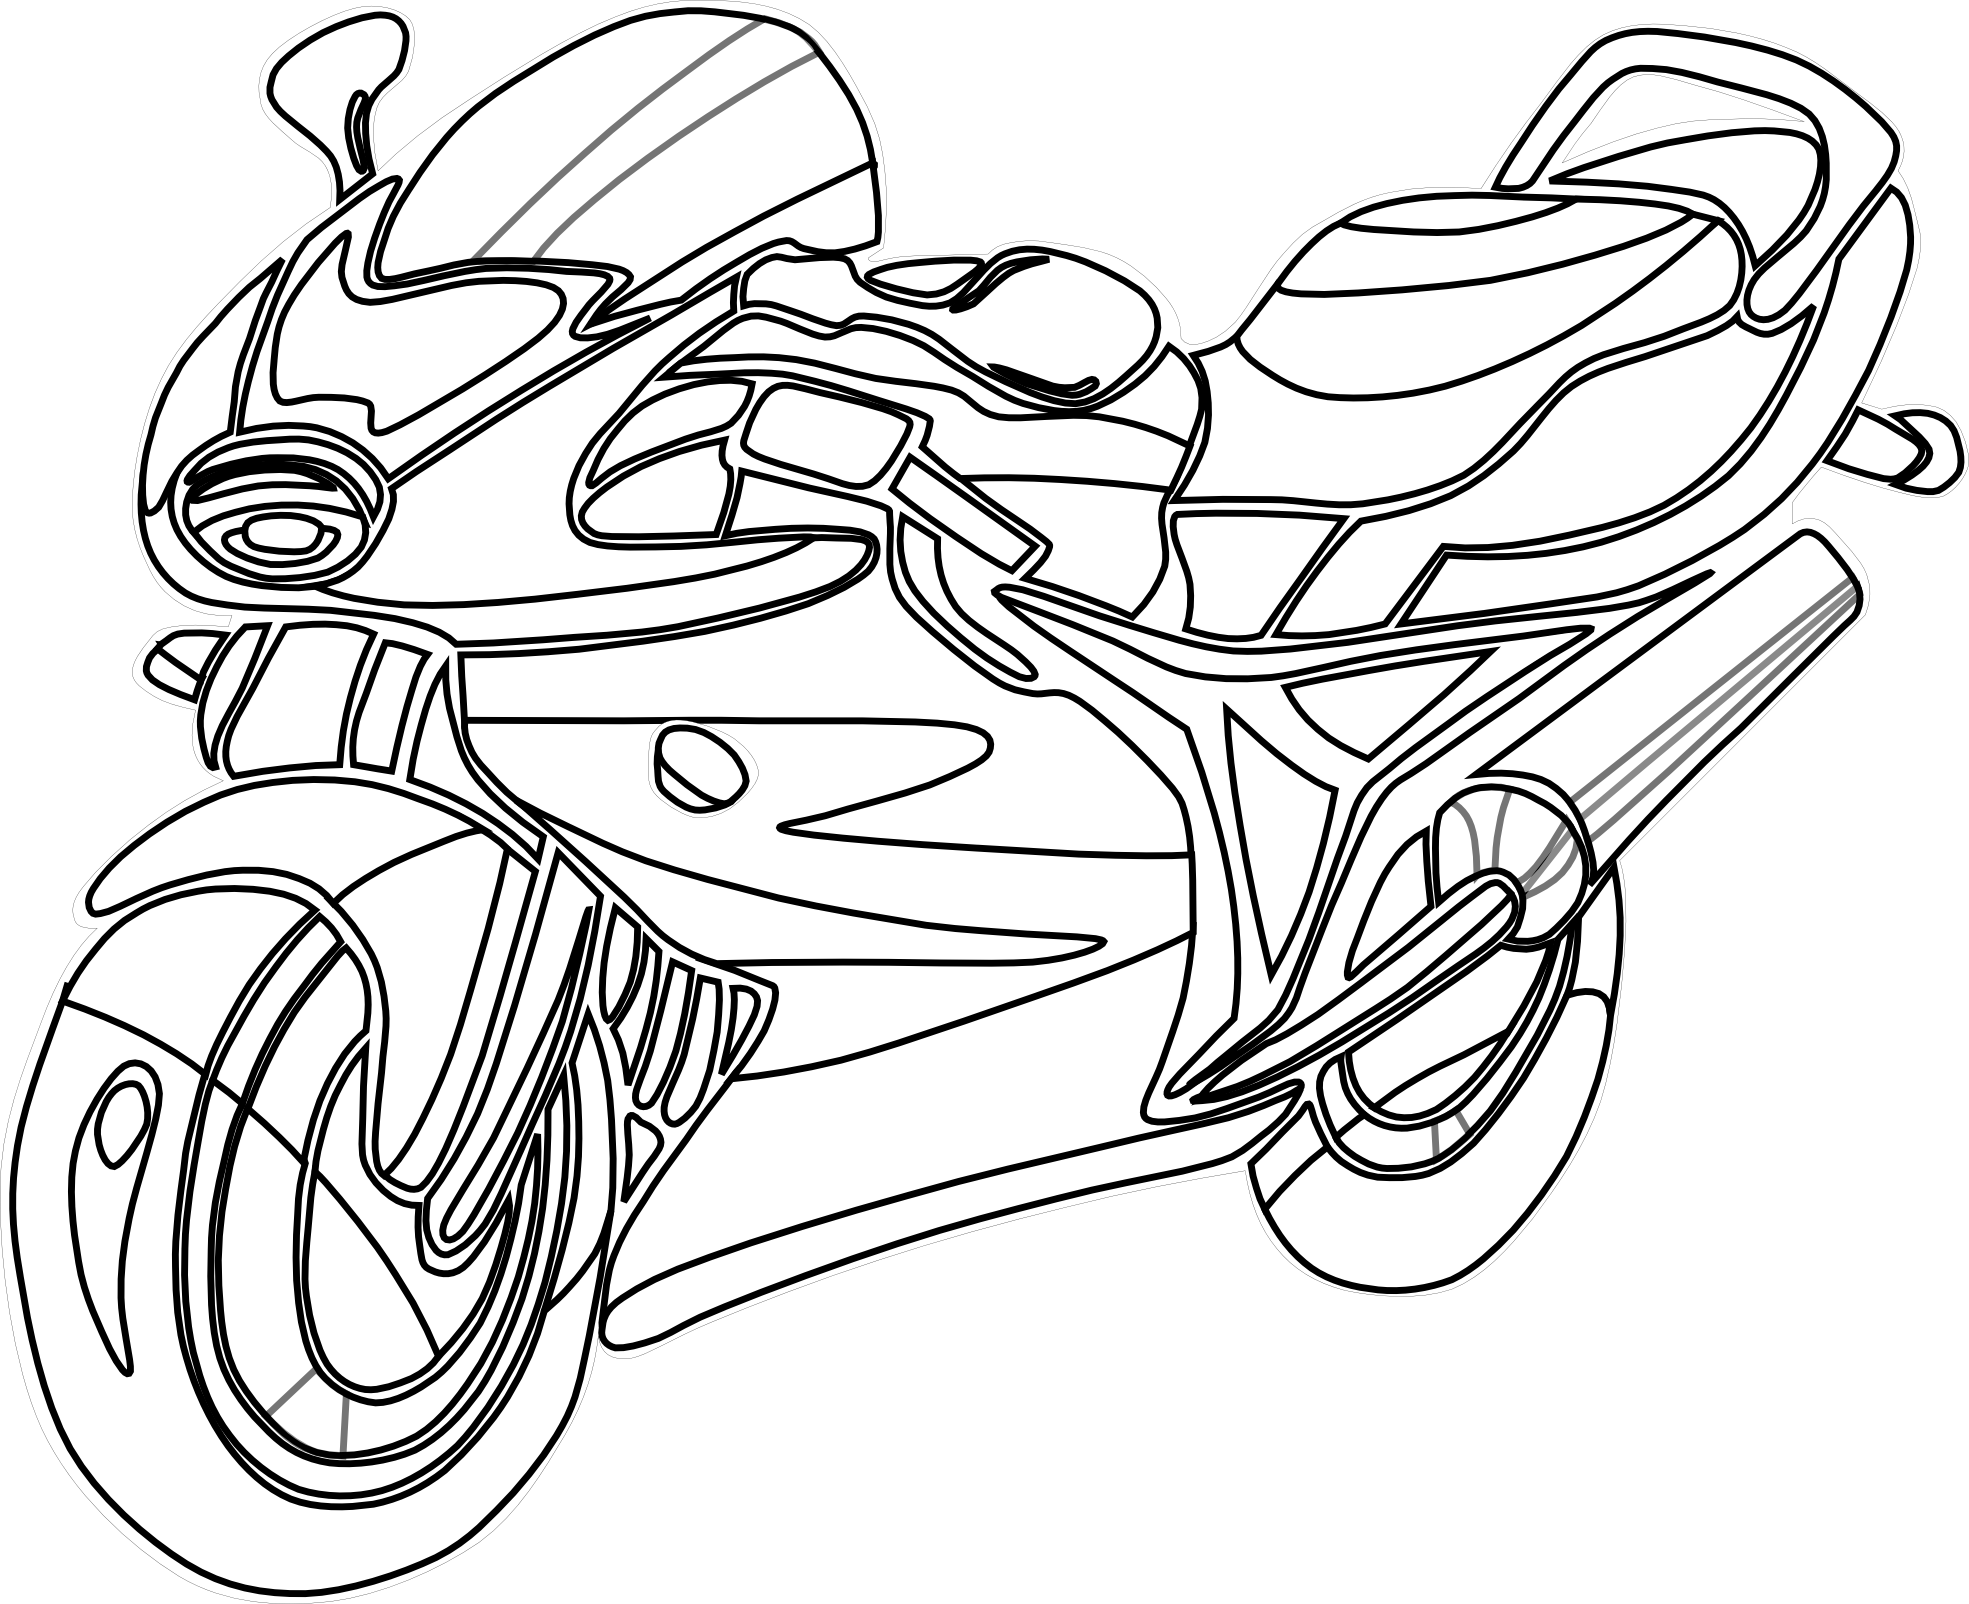 picture royalty free Motorcycle Outline Drawing at GetDrawings